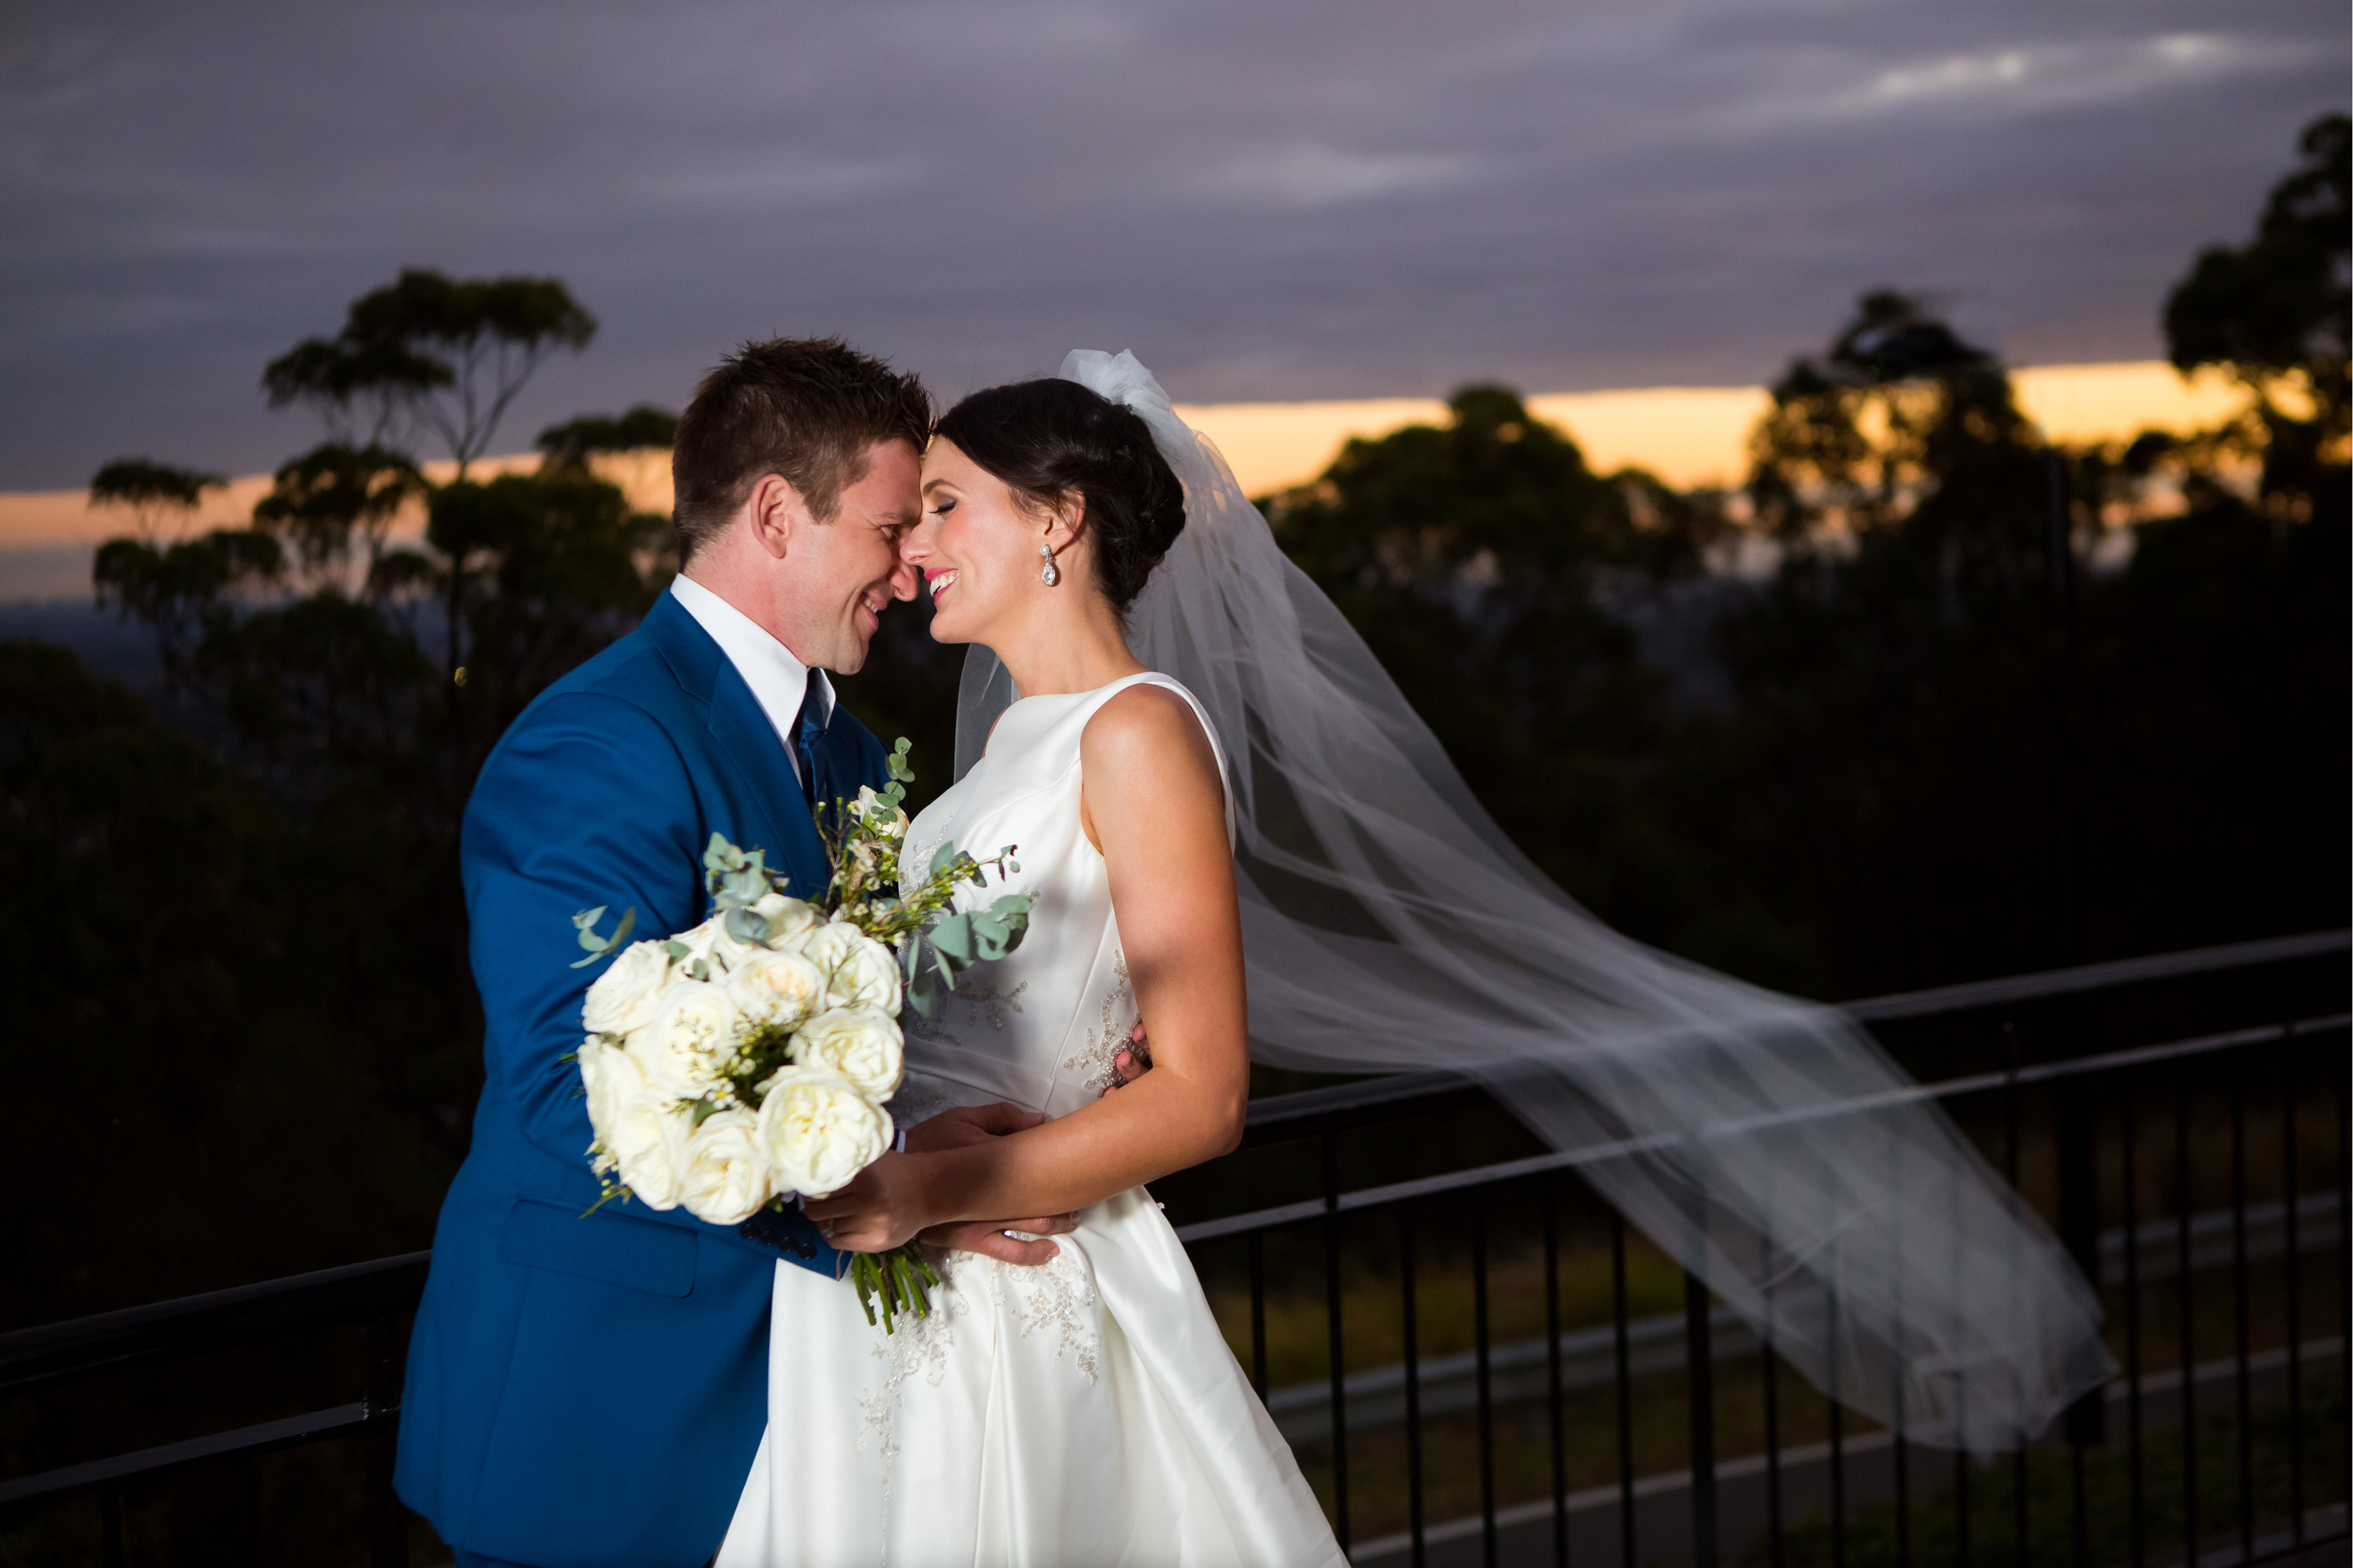 Emma_cleary_photography Destination wedding17